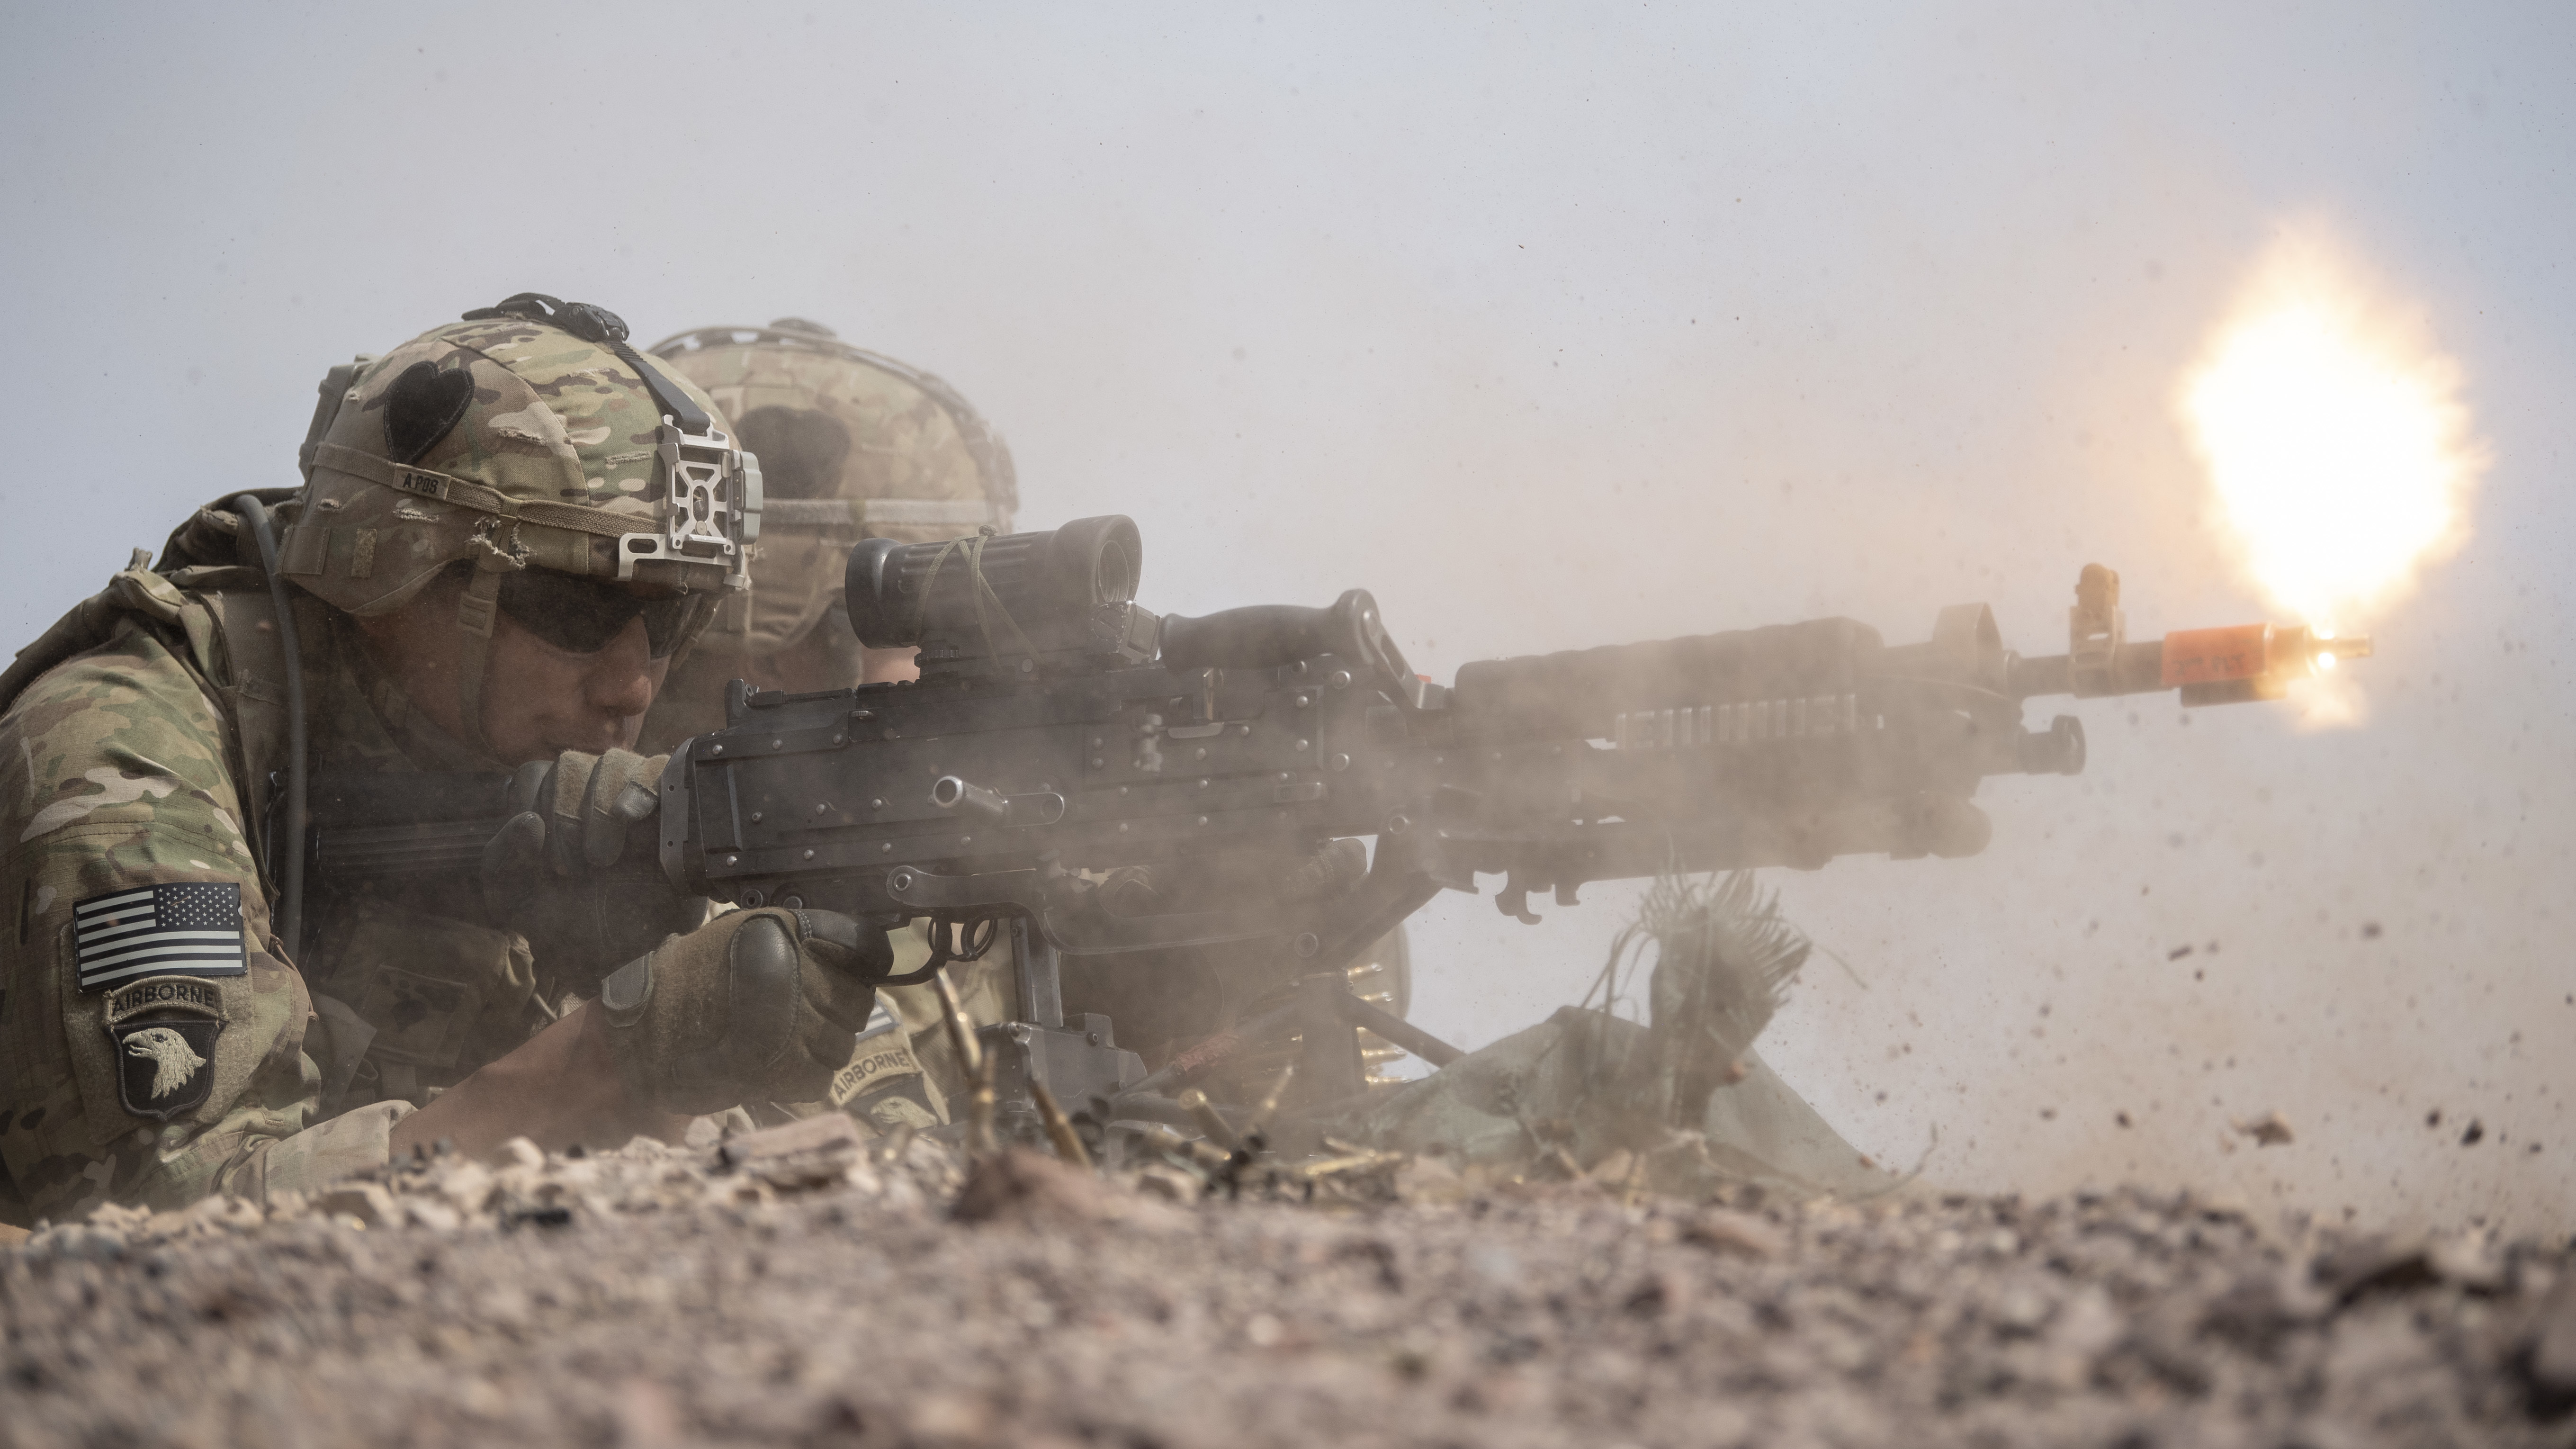 U.S. Army Soldiers from the East African Response Force (EARF), deployed in support of Combined Joint Task Force-Horn of Africa, fire an M-240 bravo machine gun during a live-fire exercise at Arta Range, Djibouti, Aug. 26, 2019. The EARF conducts live fires as part of their readiness and squad certifications. (U.S. Air Force photo by Staff Sgt. J.D. Strong II)